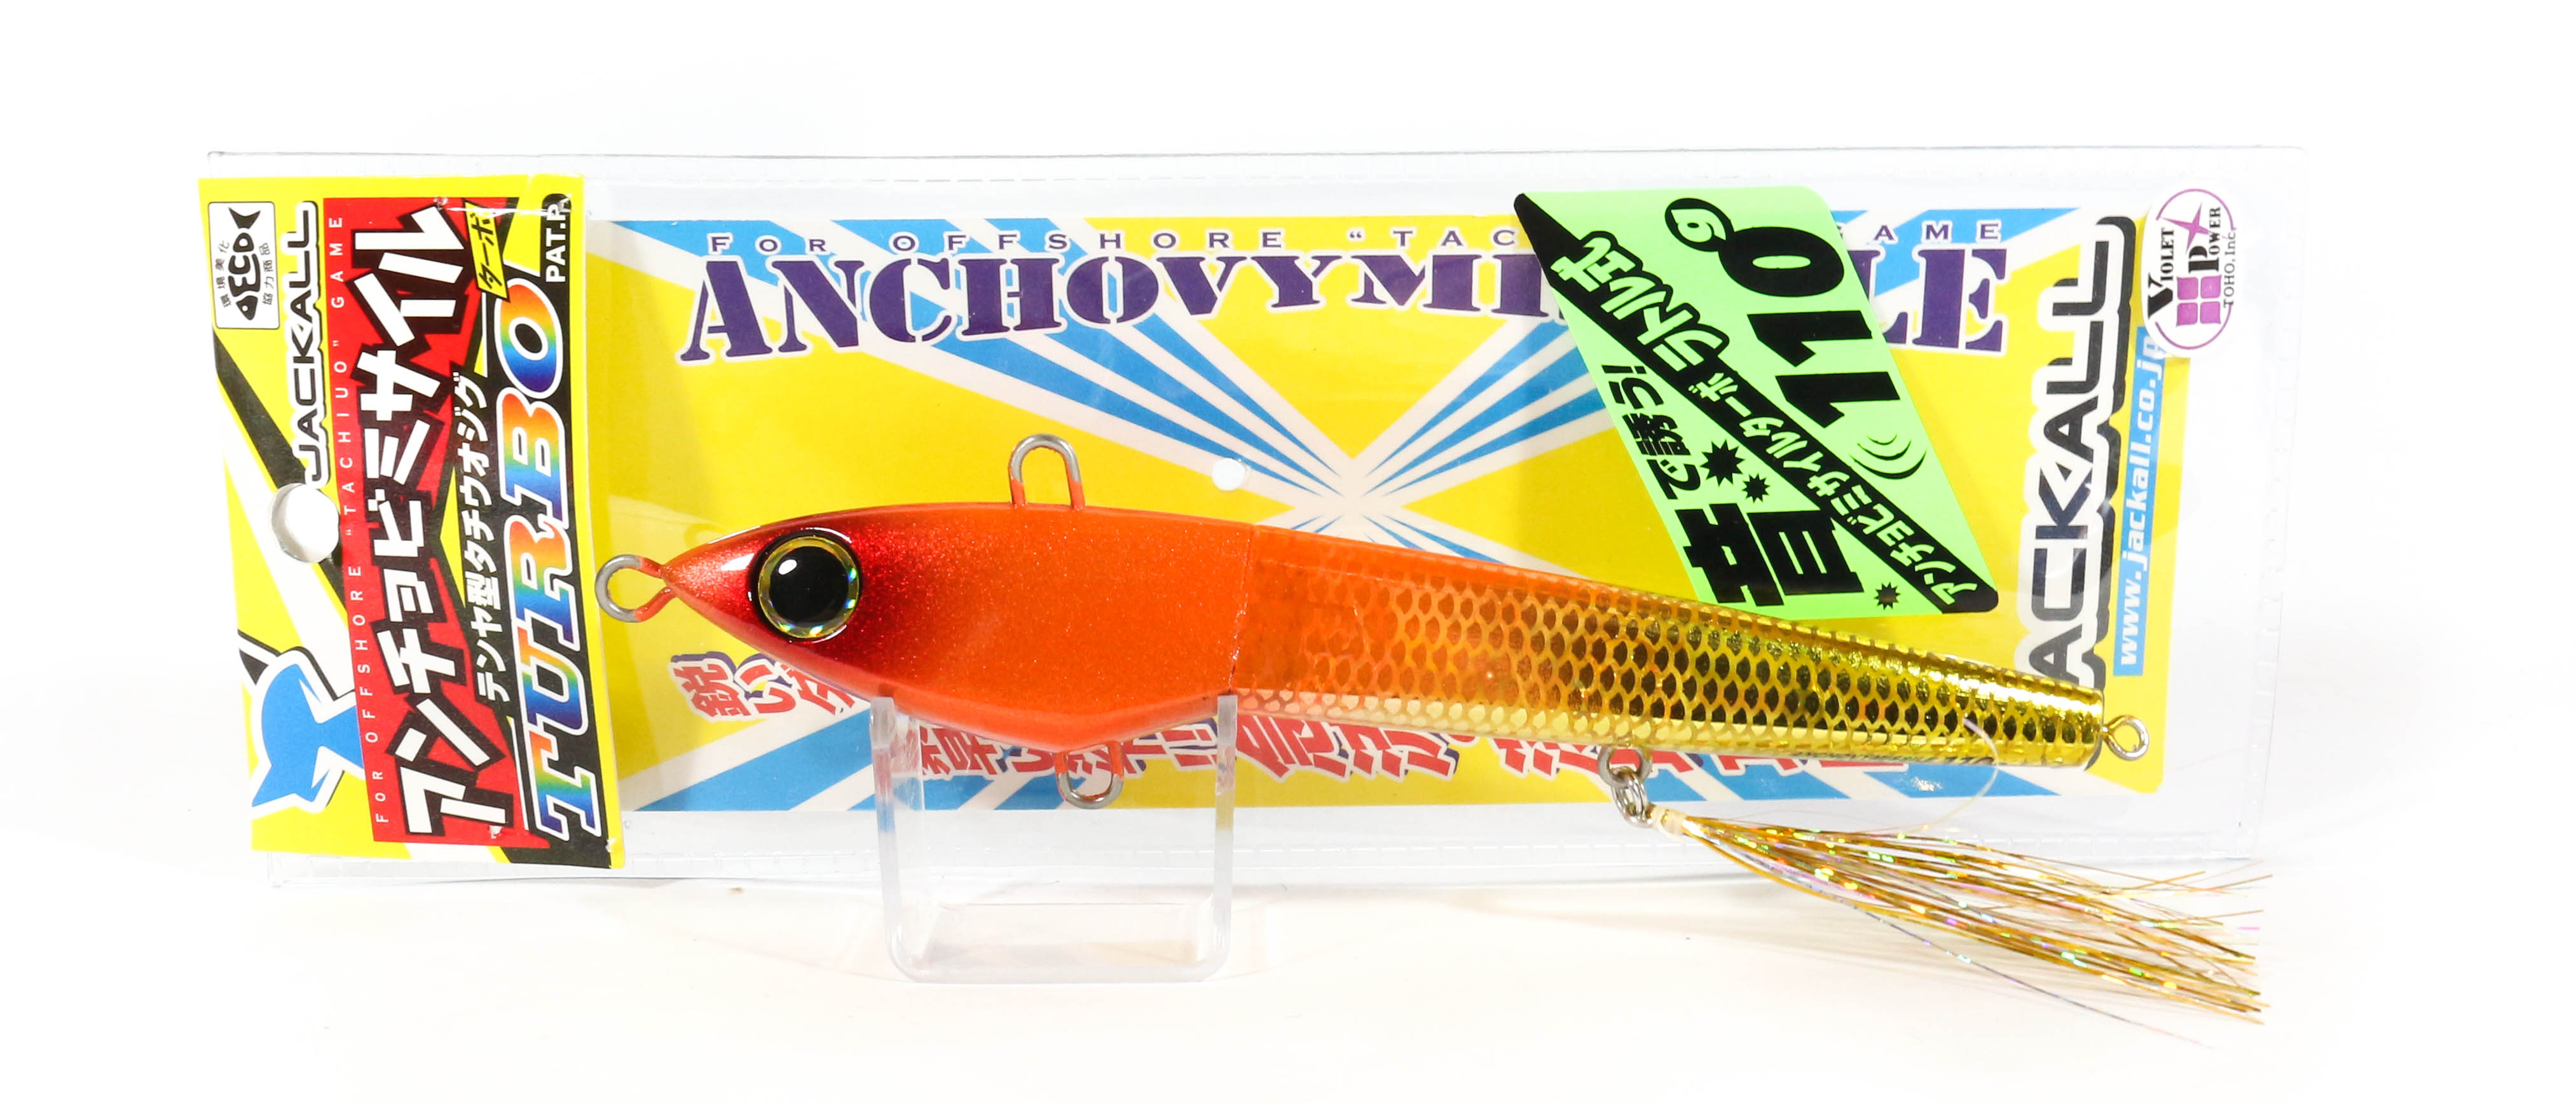 Sale Jackall Anchovy Missile Turbo RattleShiki Jig 90 grams Orange Gold (5429)